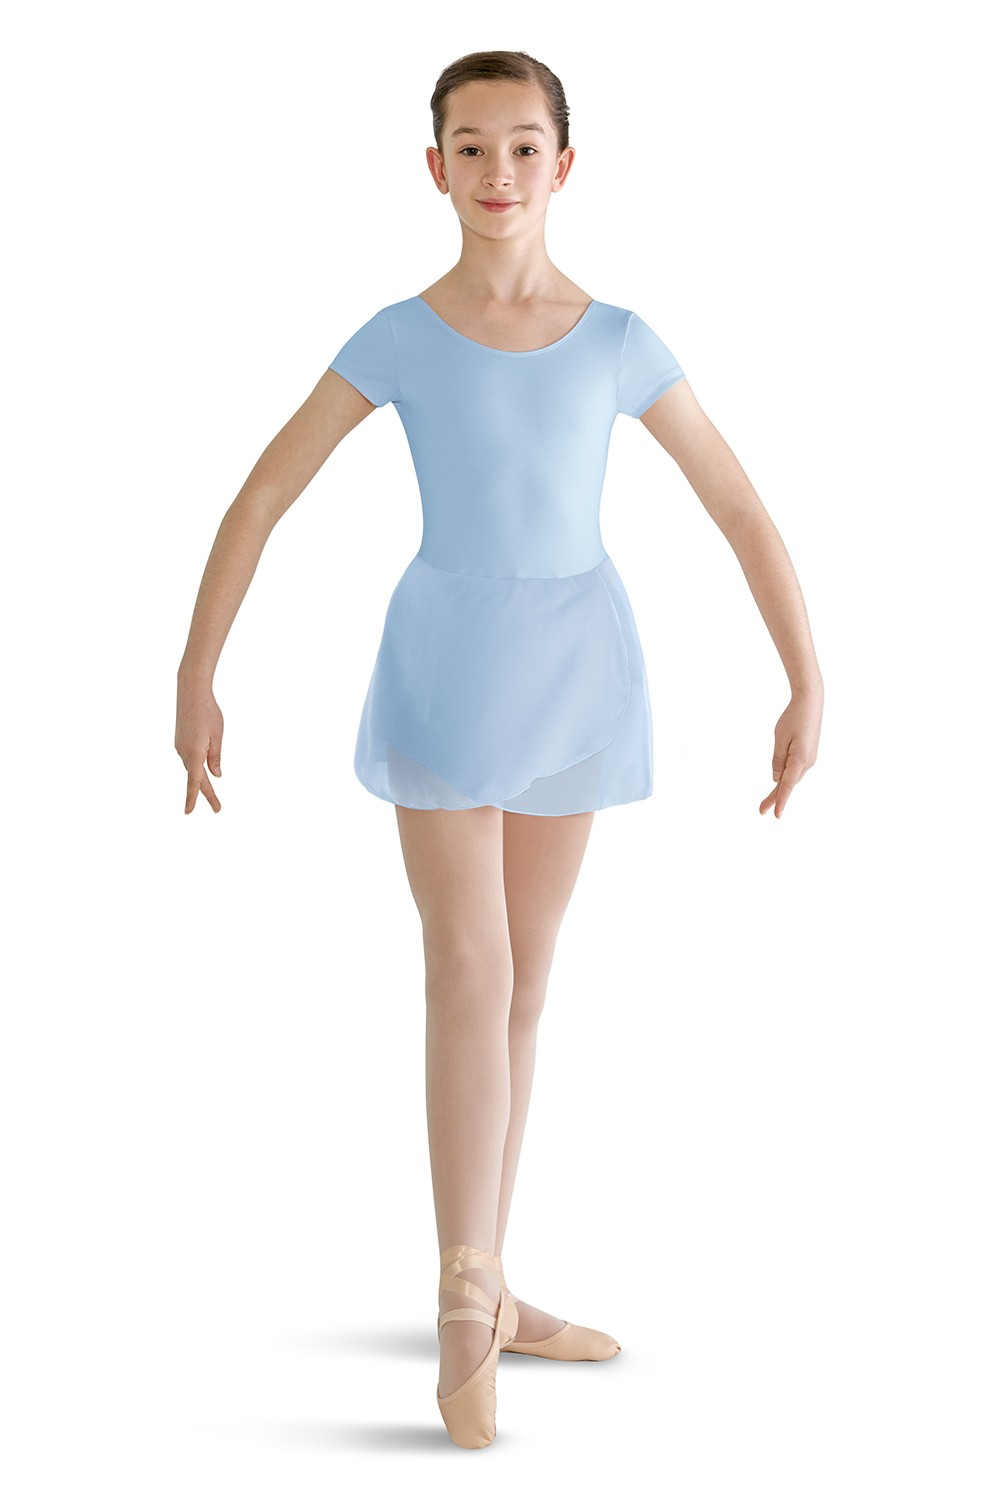 Prisha Children's Dance Leotards